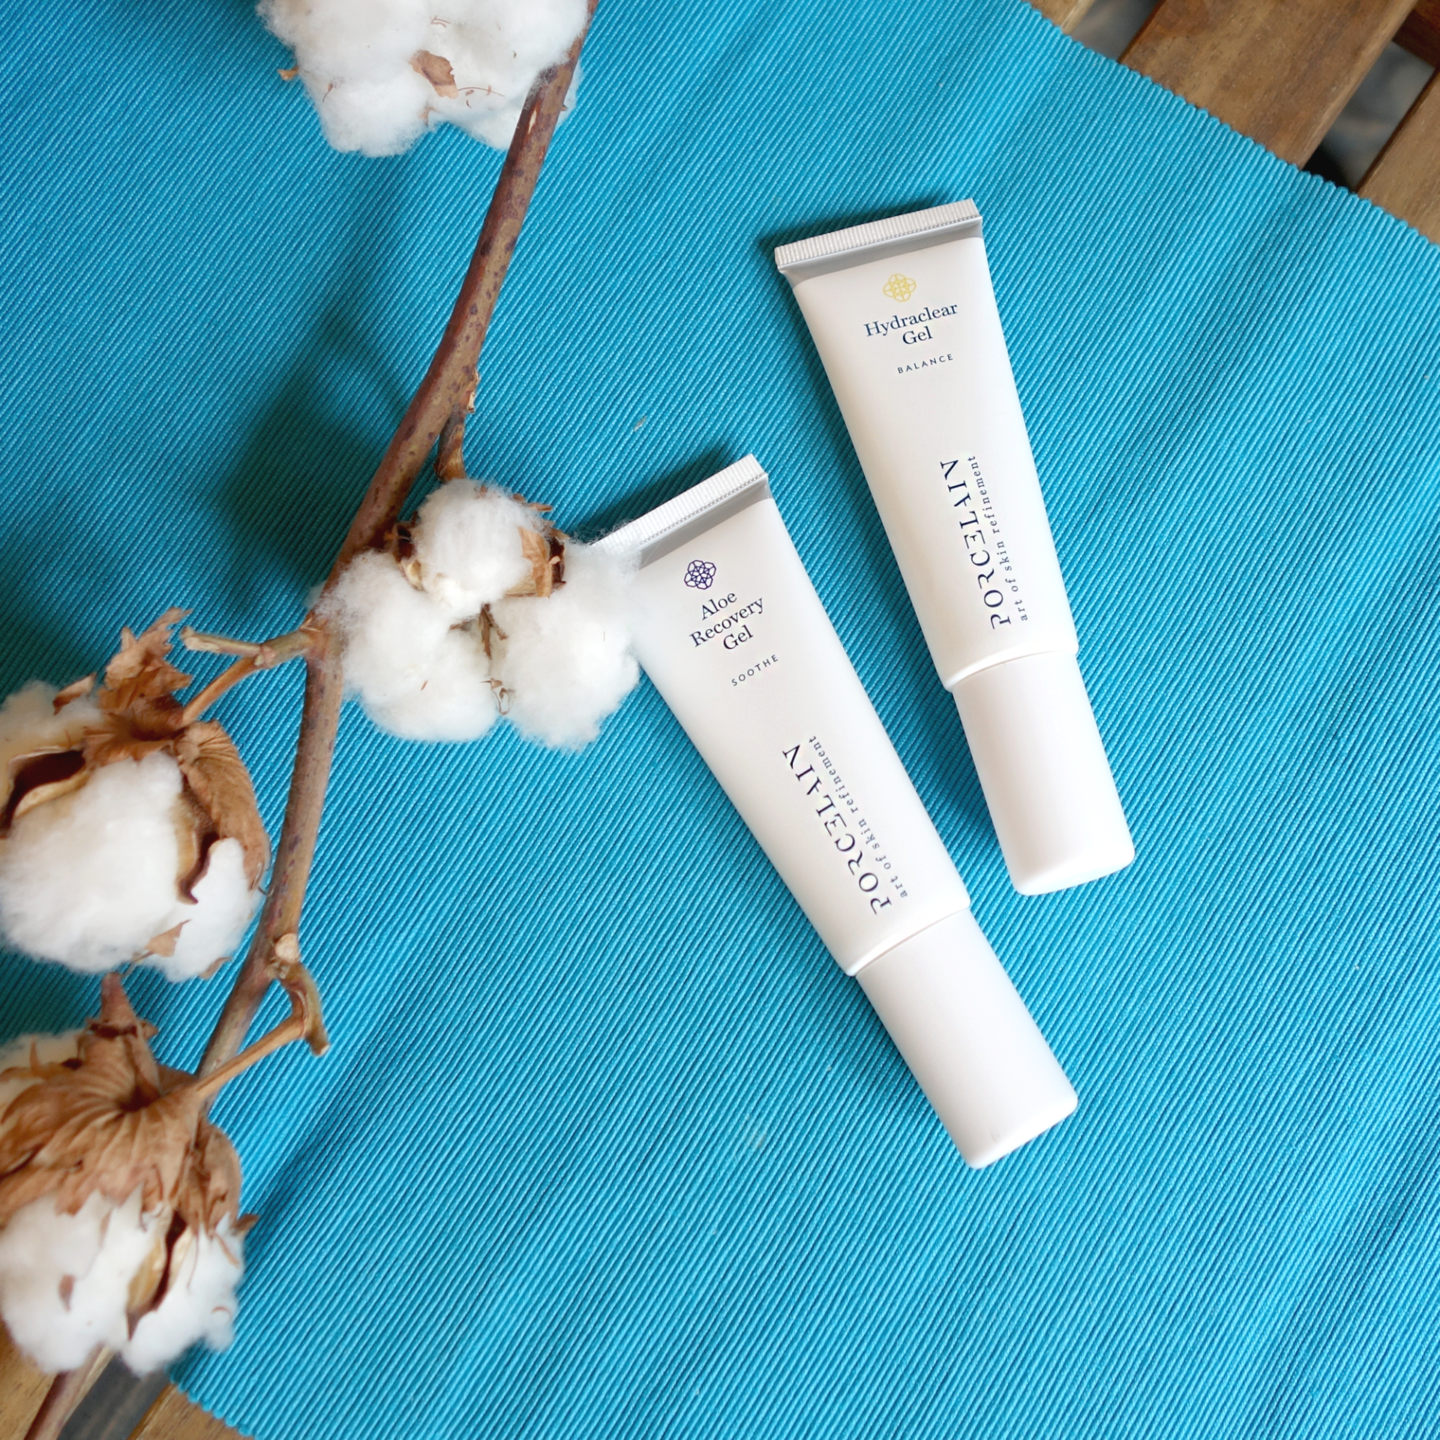 Skincare for a Long Flight: Moisturize with our Aloe Recovery and Hydraclear Gels